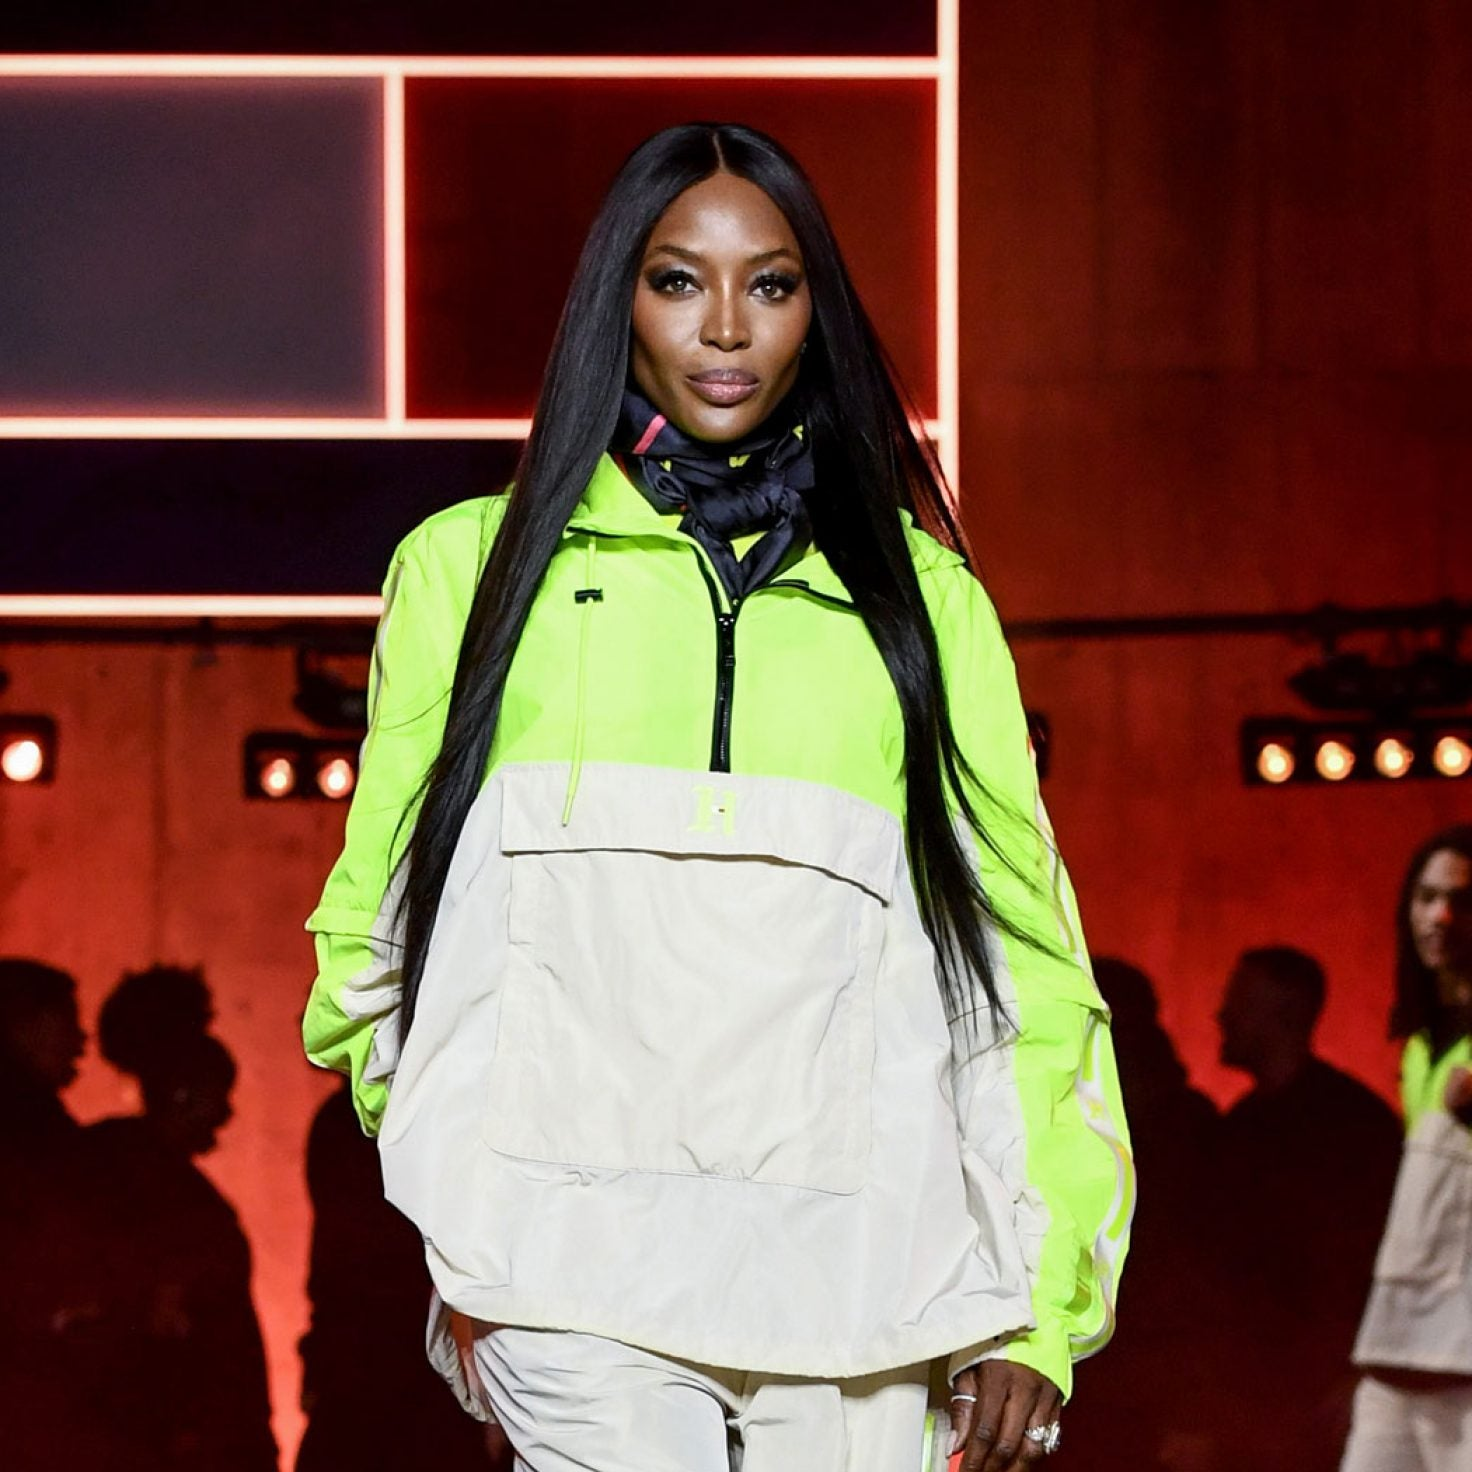 Naomi Campbell Launches Daily Live Stream 'No Filter With Naomi' On YouTube